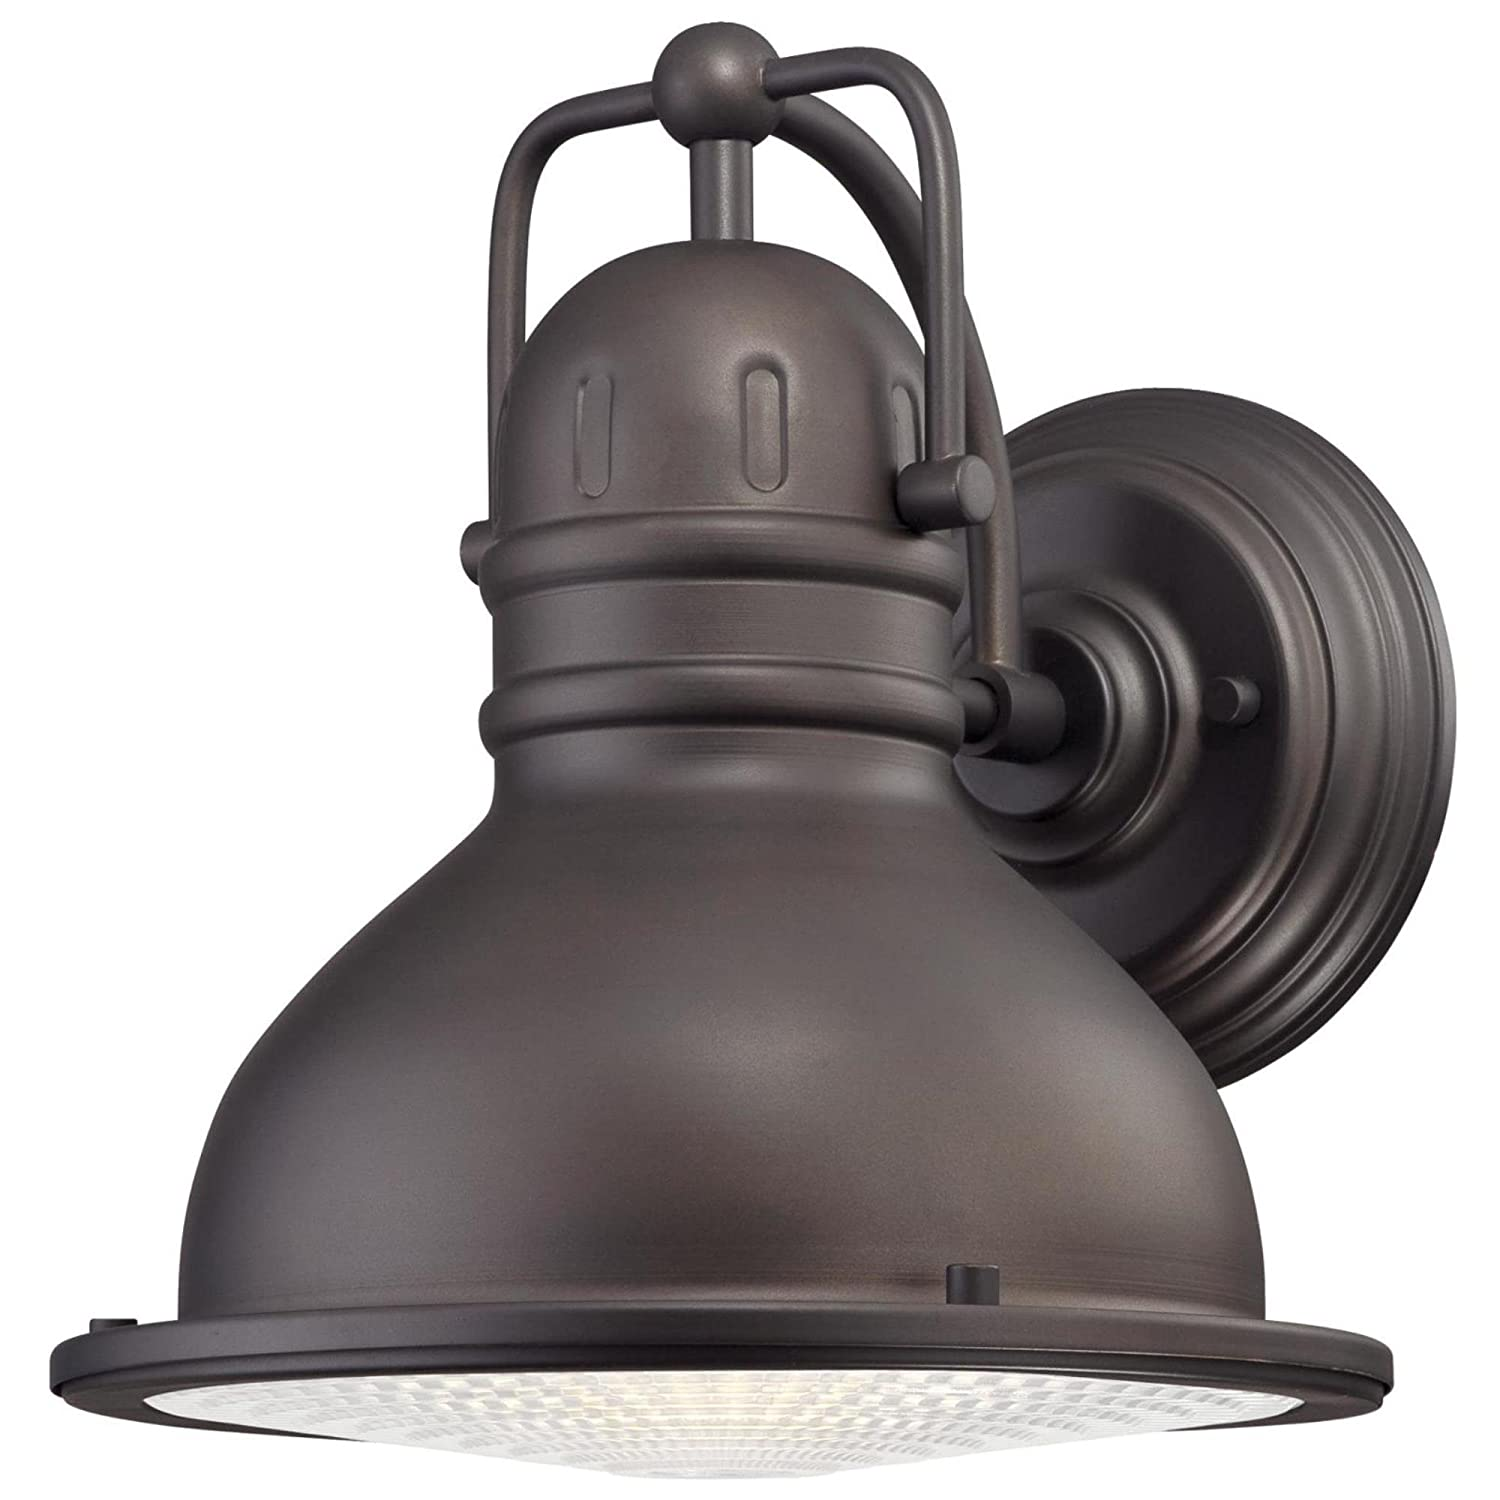 Westinghouse 6204600 Orson One-Light LED Outdoor Wall Fixture, Oil Rubbed Bronze Finish with Clear Prismatic Lens